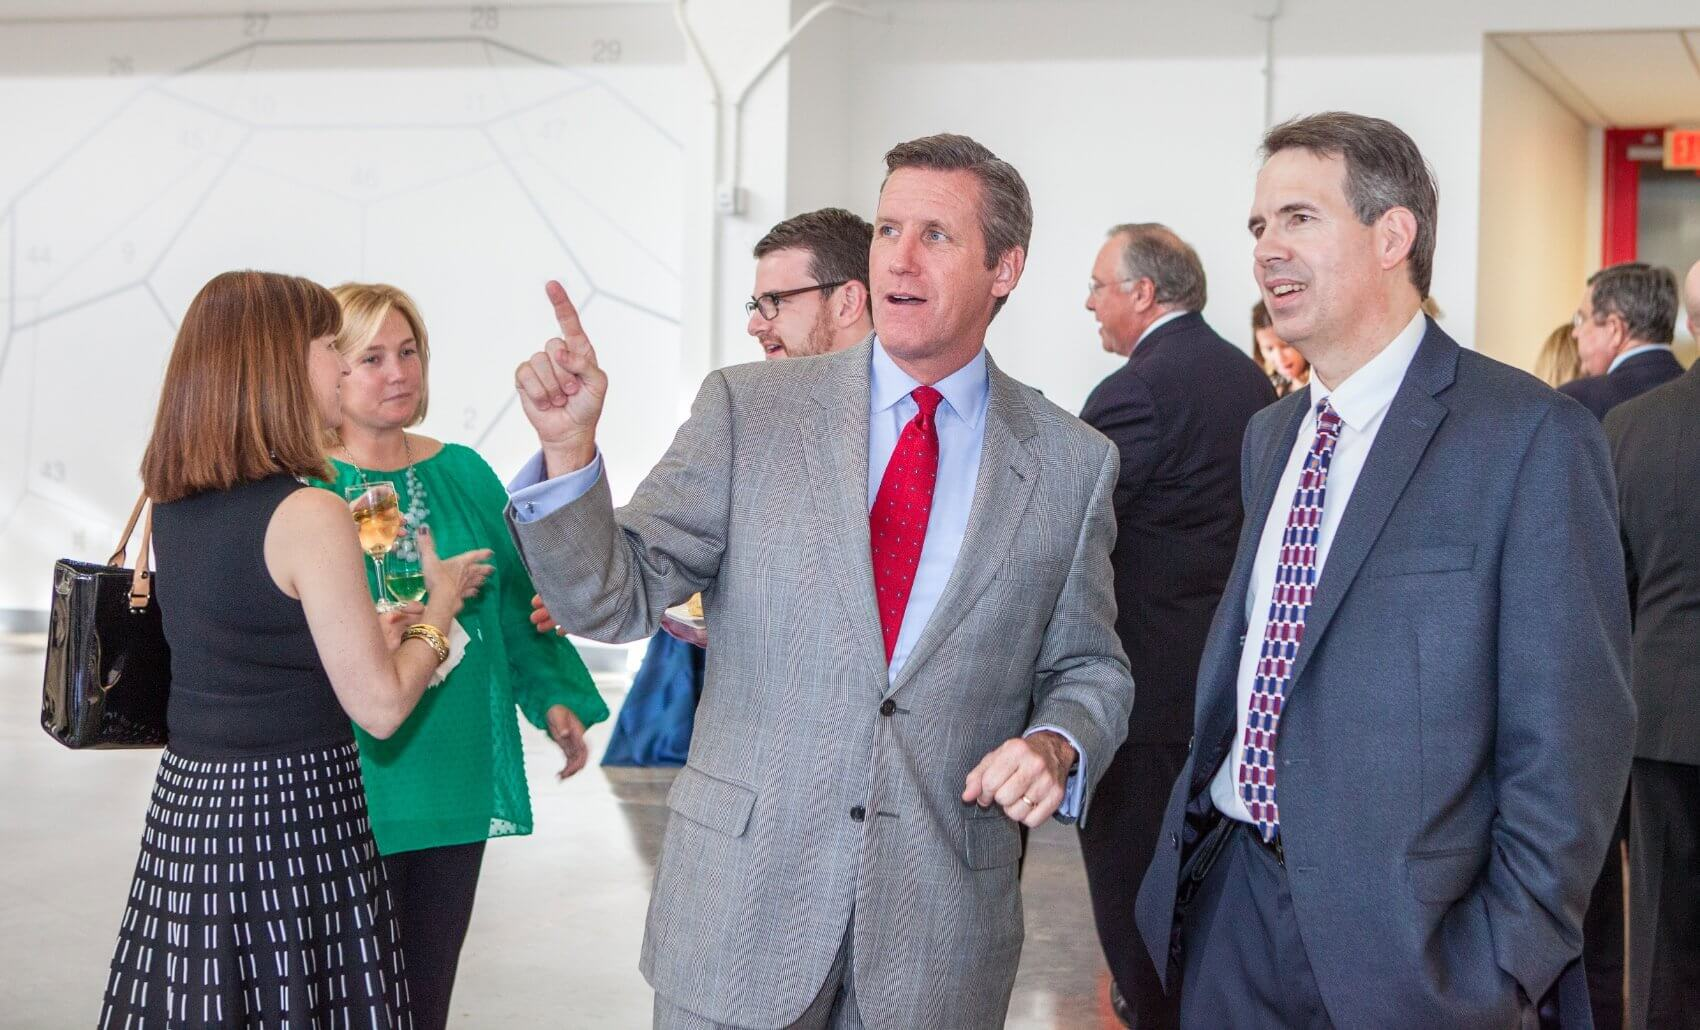 William F. McKeon, chief operating officer of Texas Medical Center, shows off the new space. (Credit: Nick de la Torre)